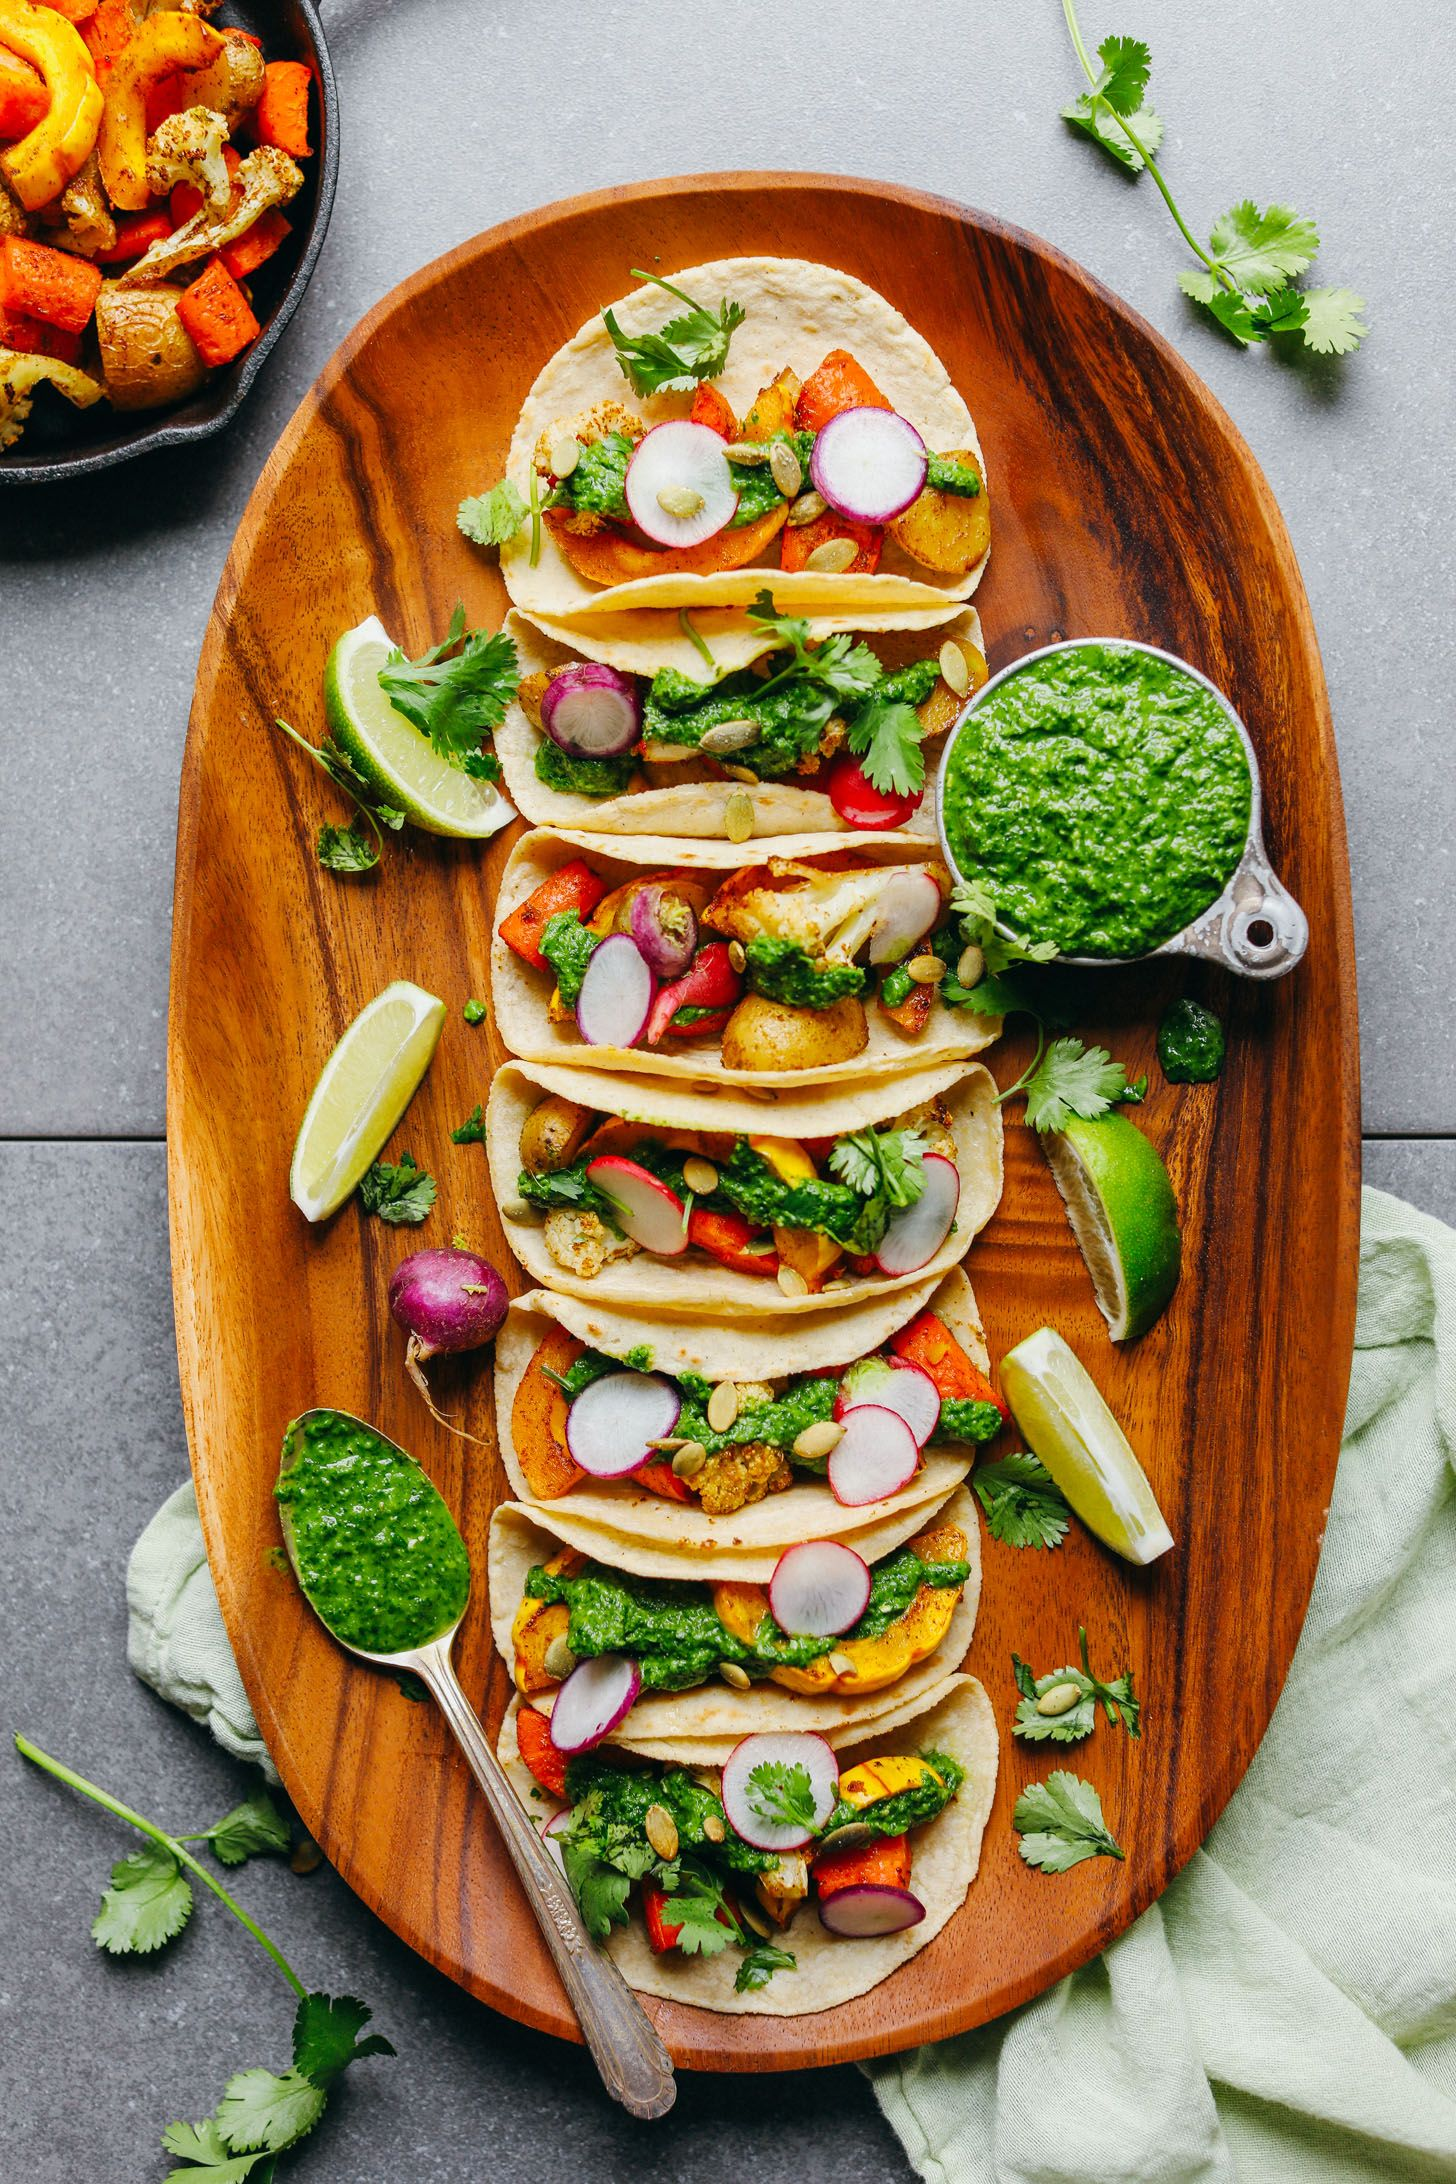 An easy, 30-minute plant-based meal: roasted vegetable tacos seasoned with spices, wrapped inside warm tortillas, and topped with vibrant chimichurri! Seasonally versatile, big flavor, so healthy!